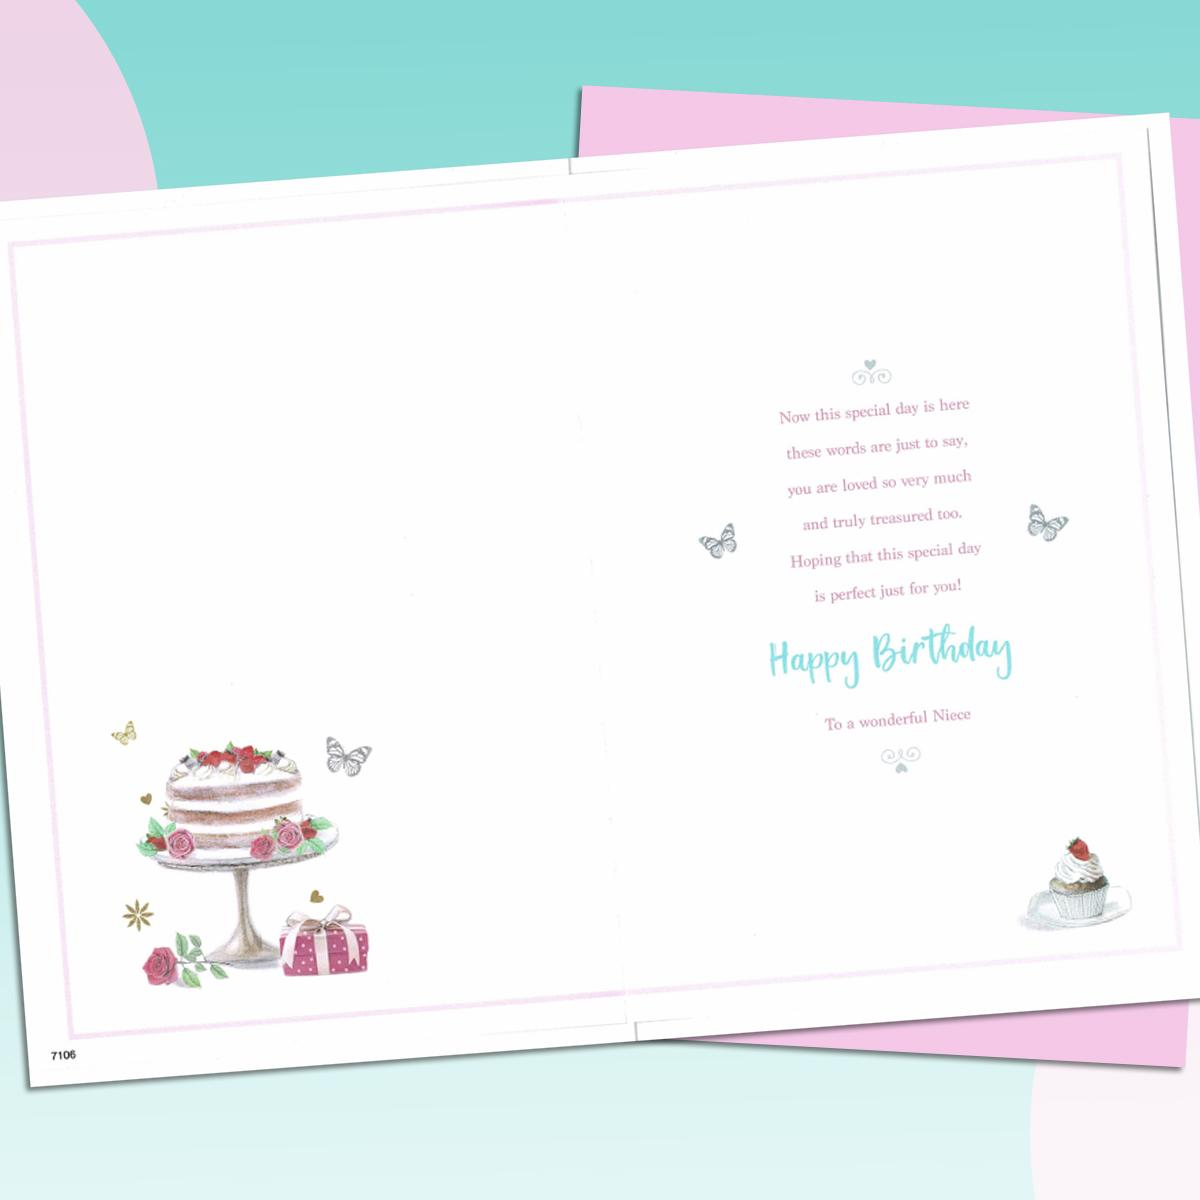 Niece Birthday Card Alongside Its Light Pink Envelope